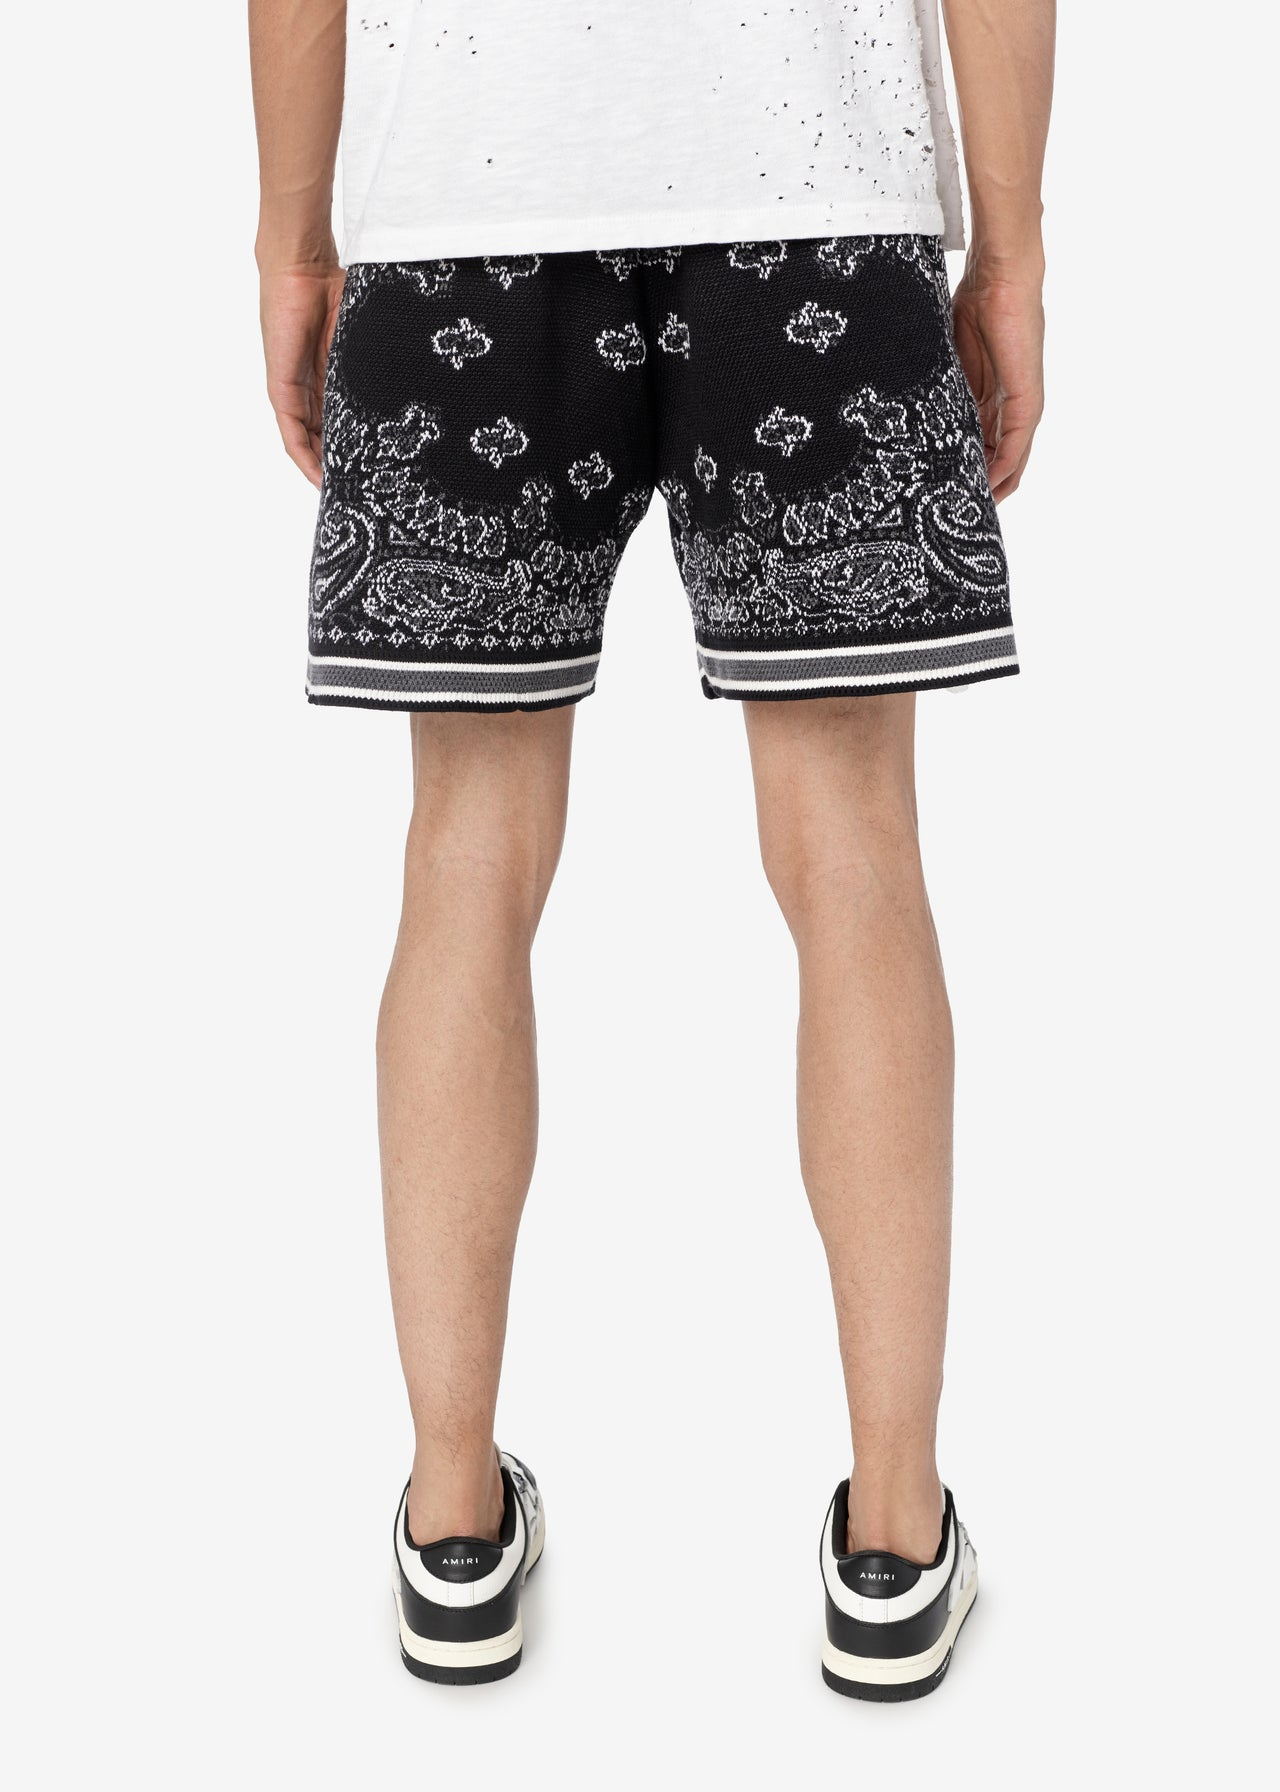 BANDANA B-BALL SHORTS - BLACK